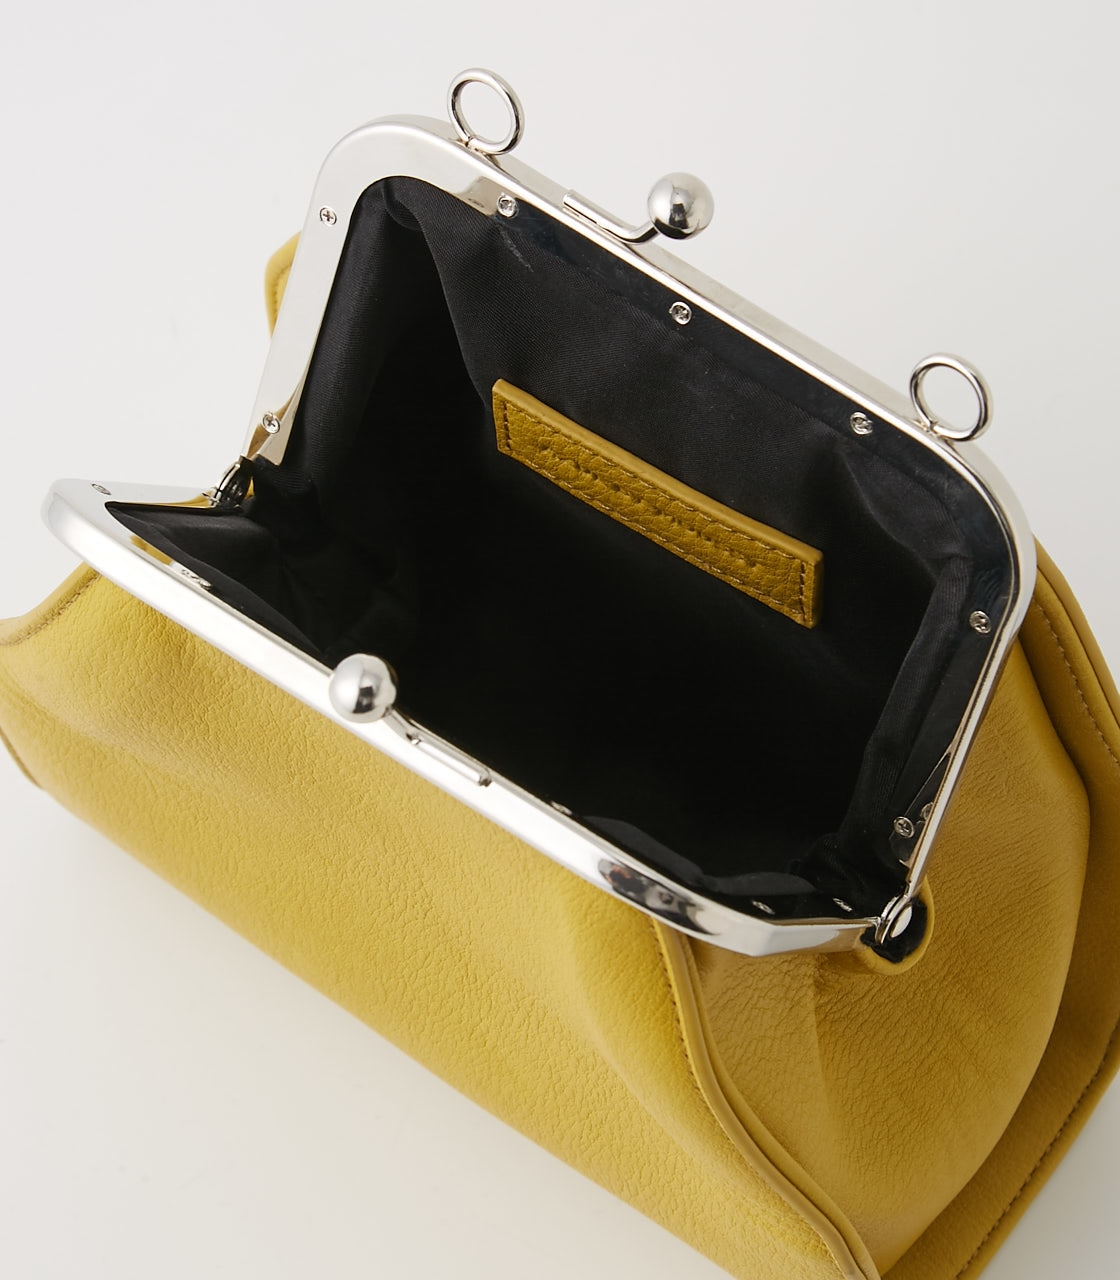 【AZUL BY MOUSSY】PESE PURSE SHOULDER BAG 【MOOK49掲載 90055】 詳細画像 YEL 7